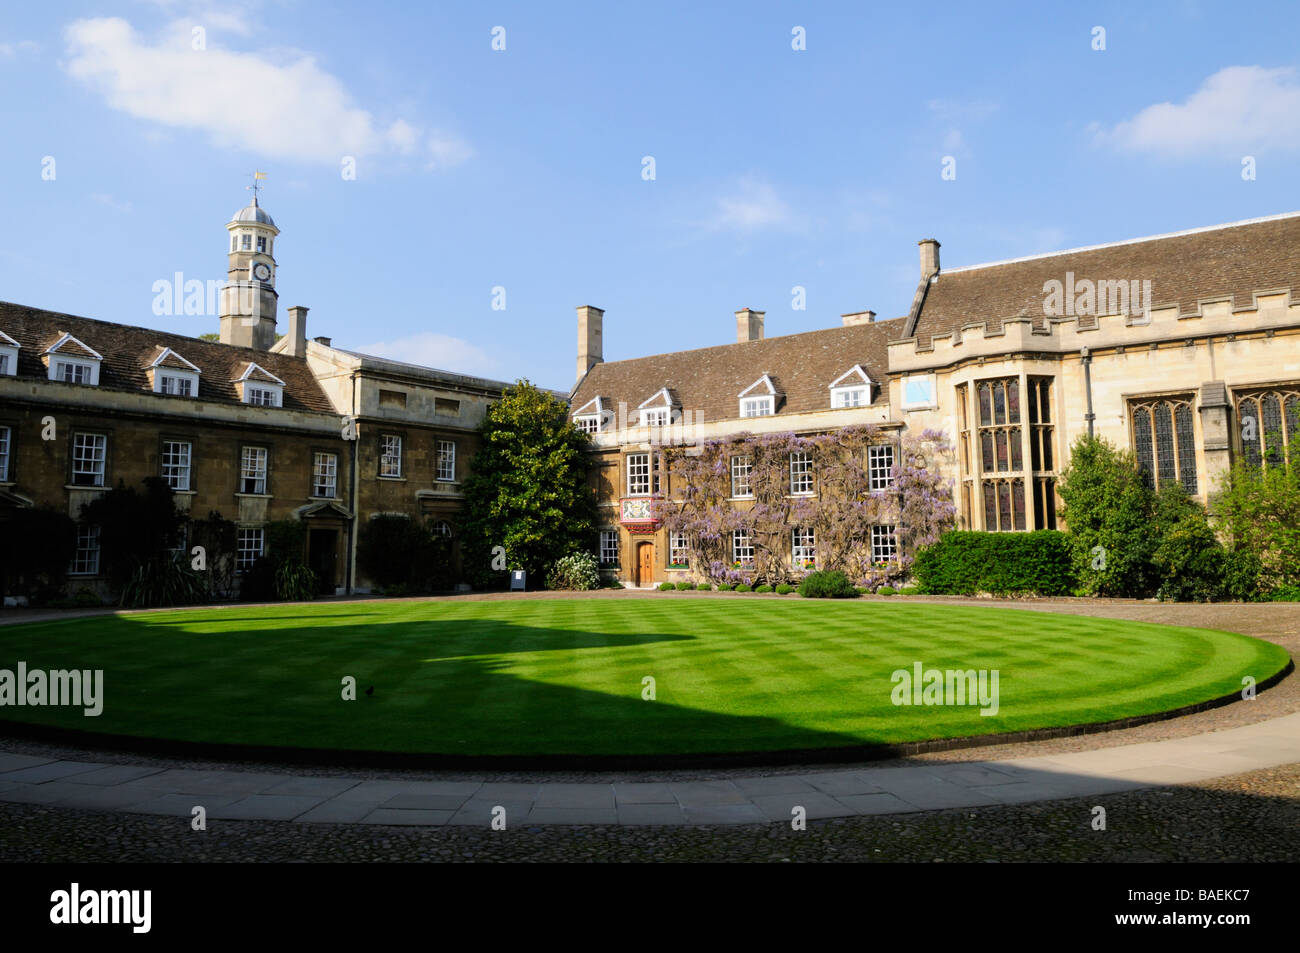 First Court at Christs College Cambridge England UK - Stock Image